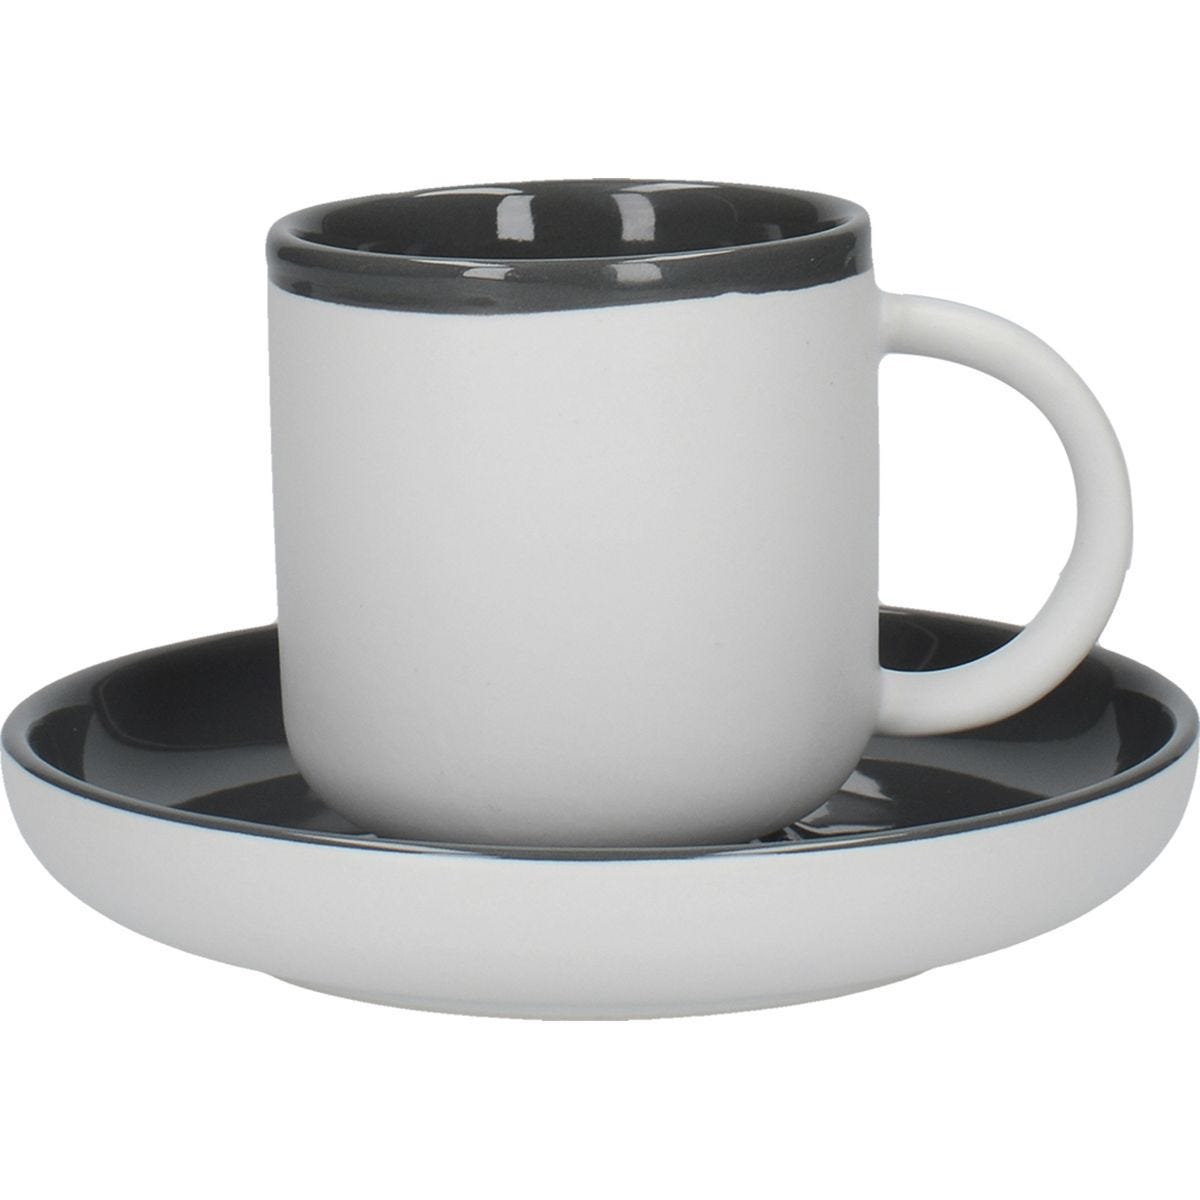 La Cafetiere Ceramic Barcelona Coffee Cup And Saucer Cool Grey 300ml Robert Dyas